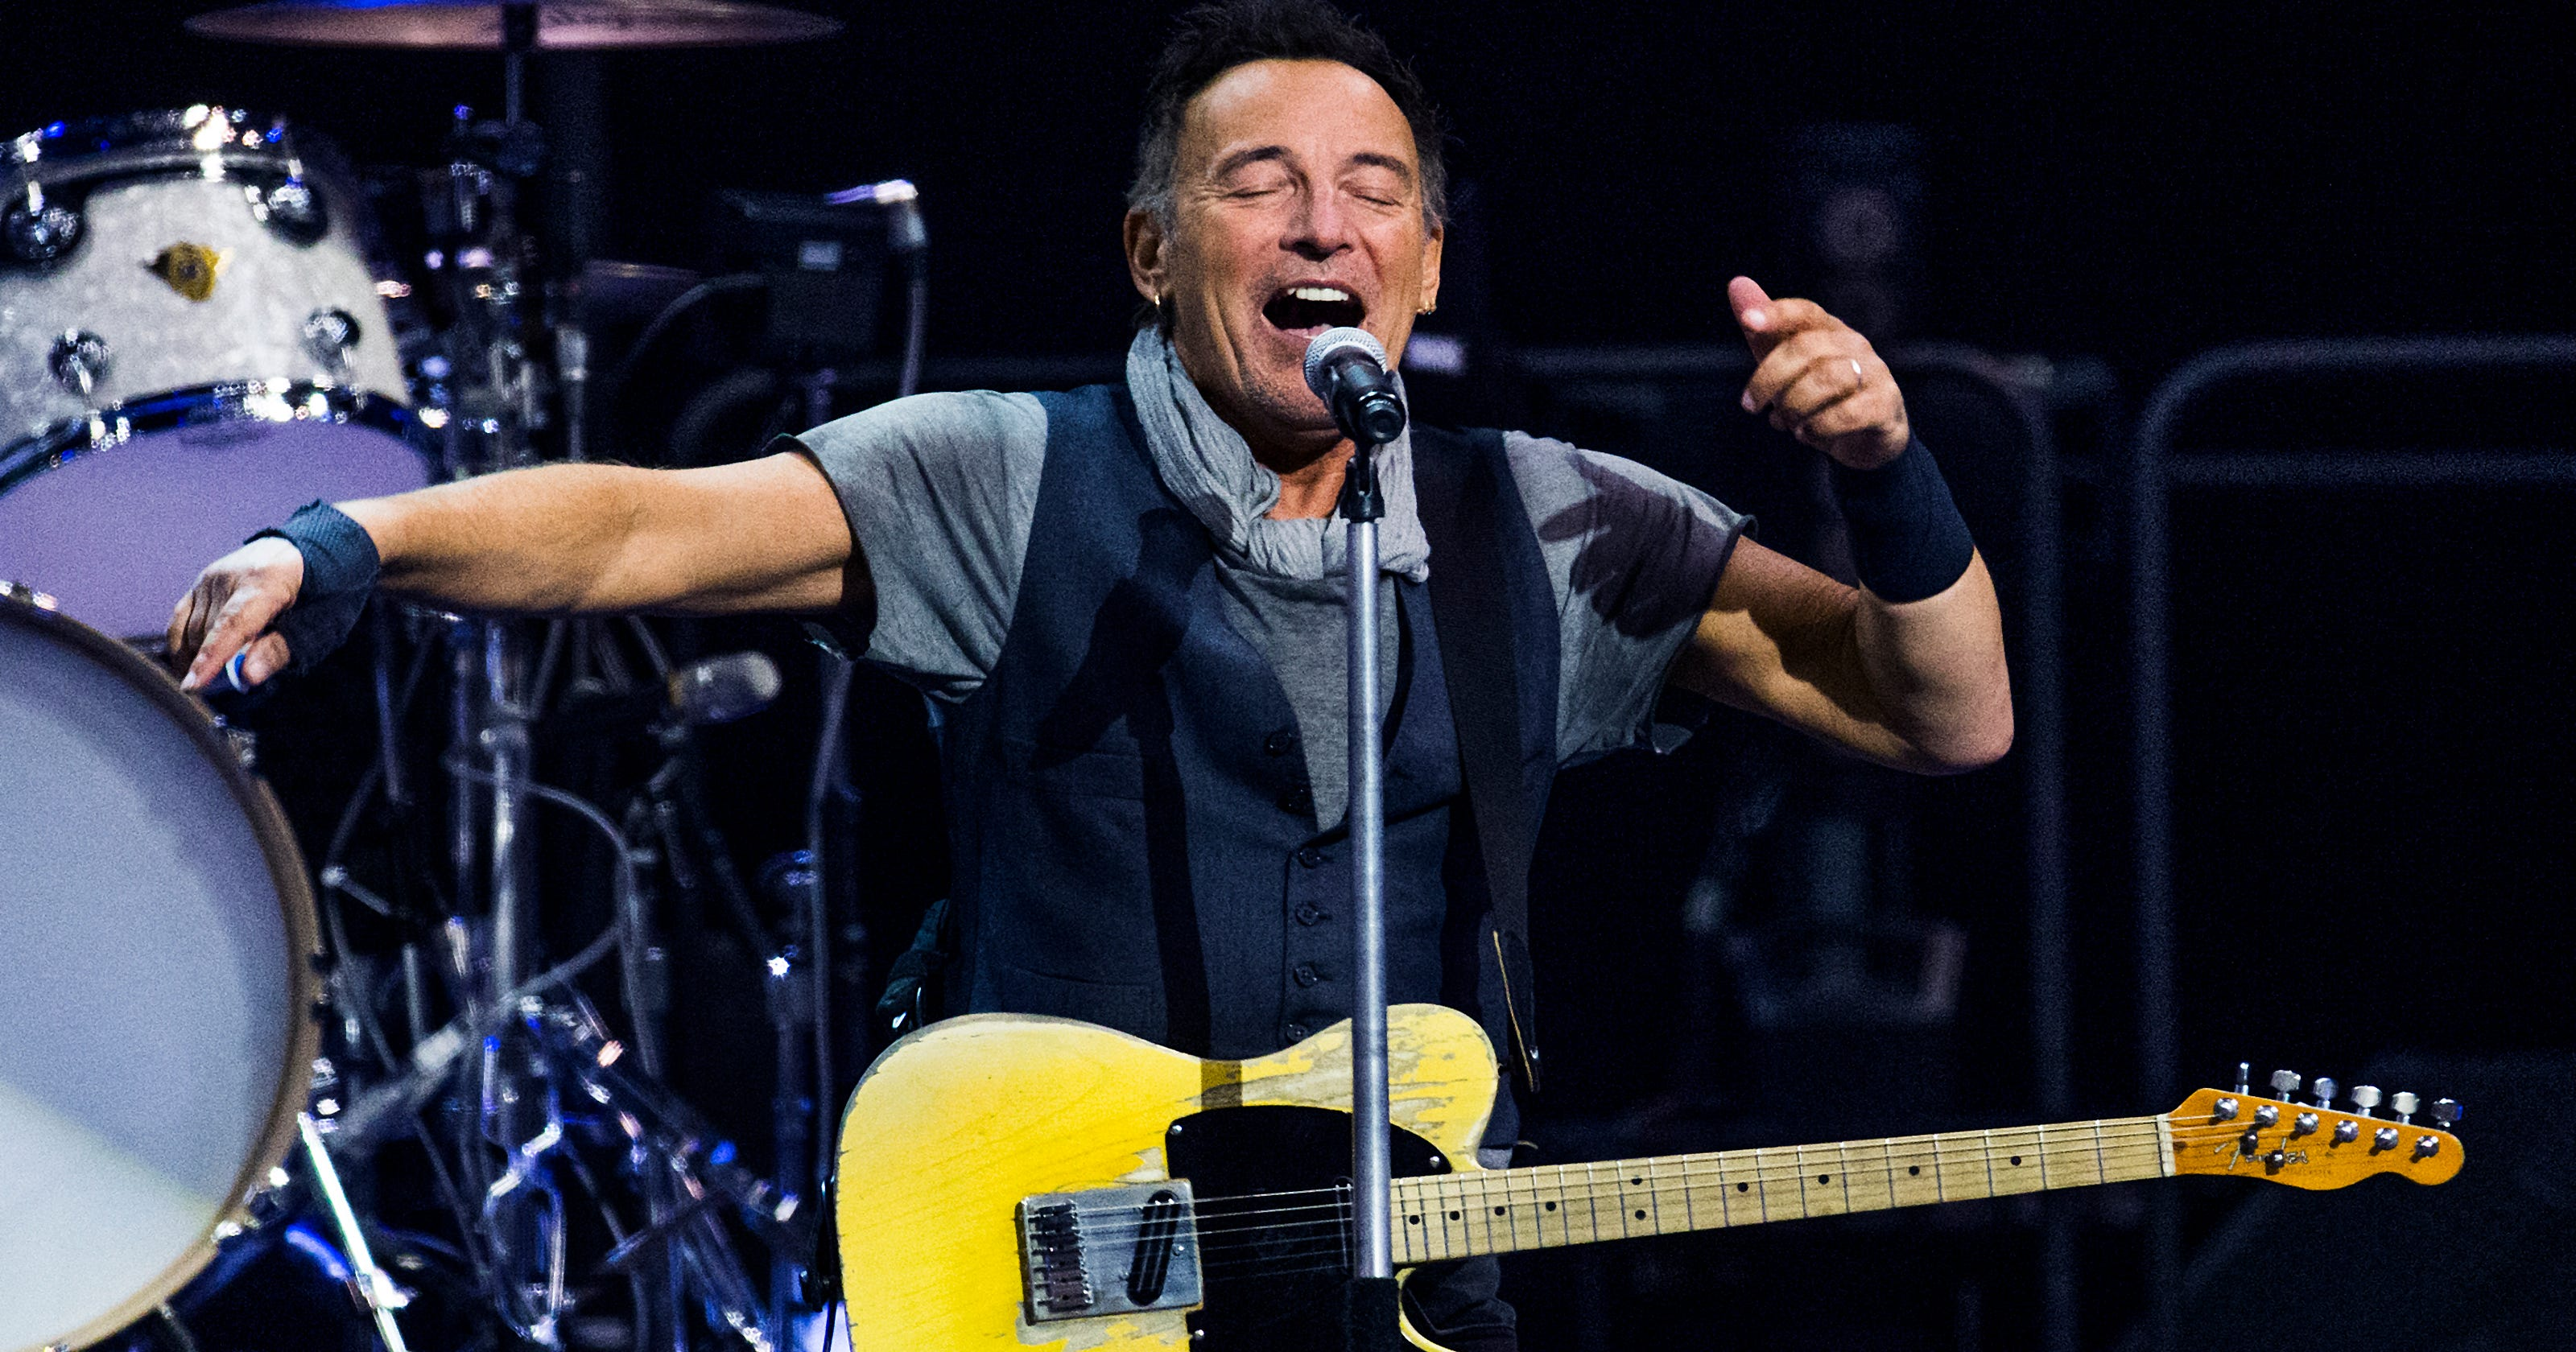 Springsteen and stadium seats: You can help save indie music venues with this rock auction